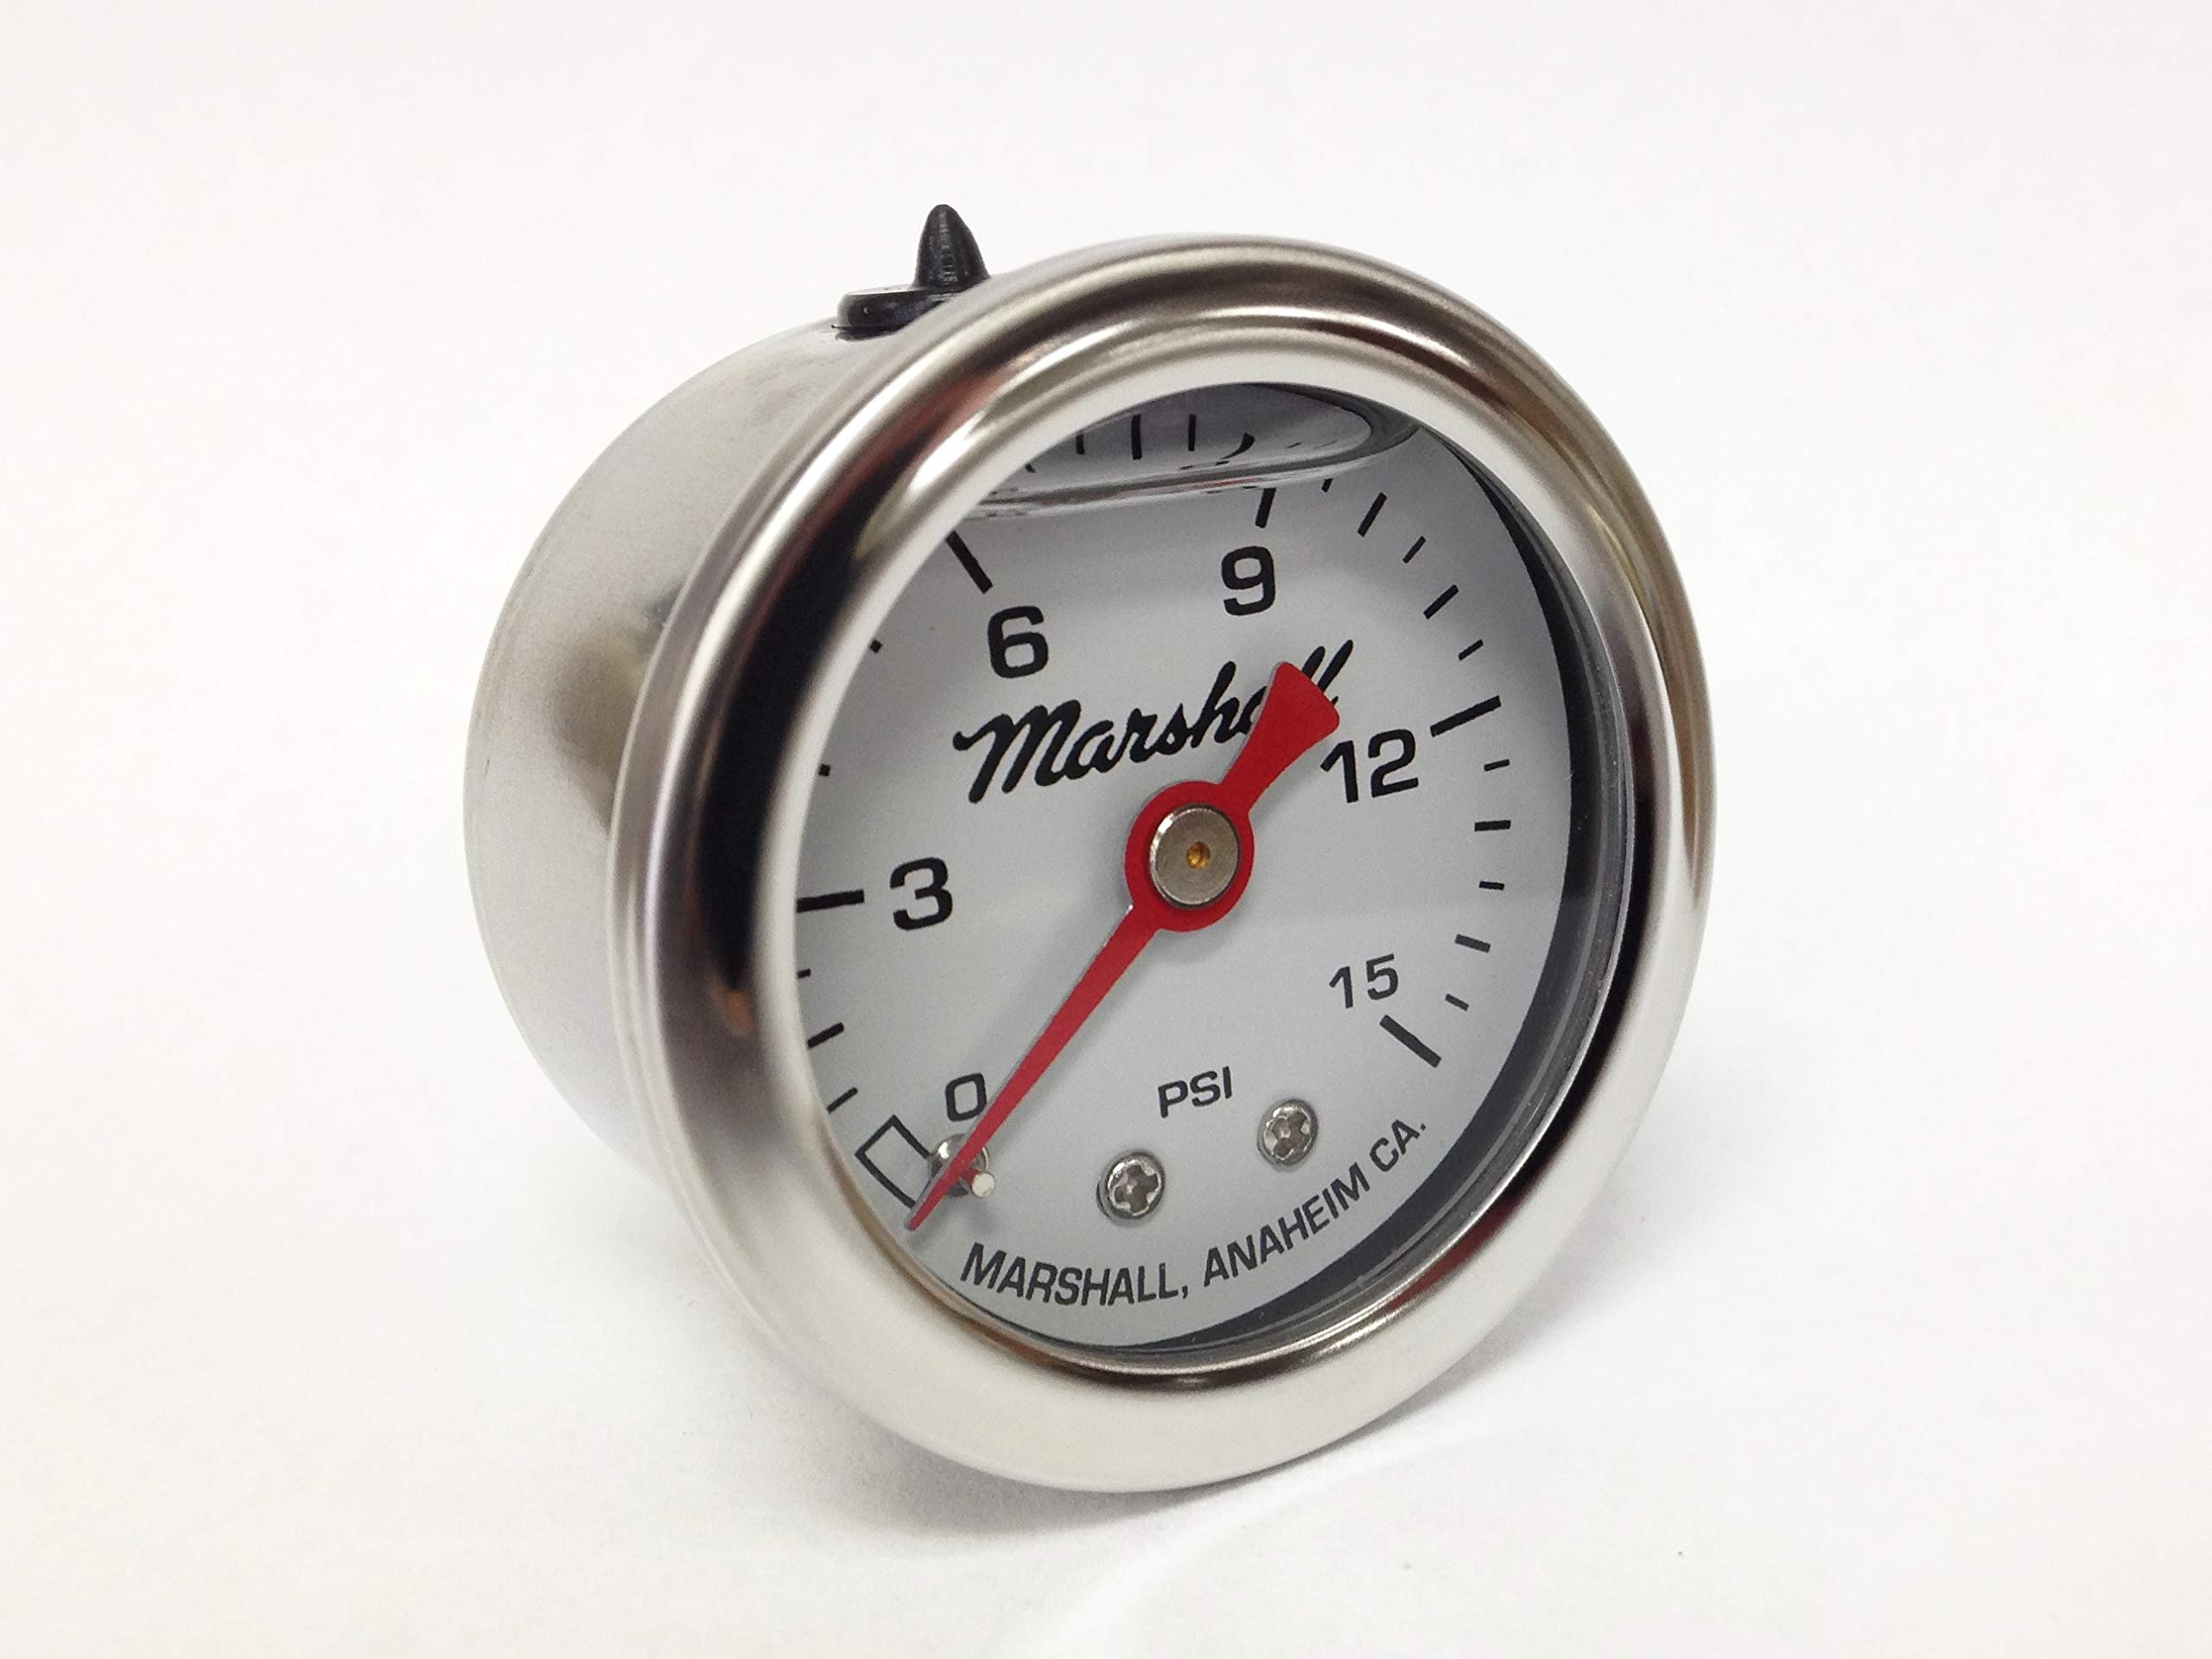 CW00015 Liquid Filled Fuel Pressure Gauge by Marshall Instruments